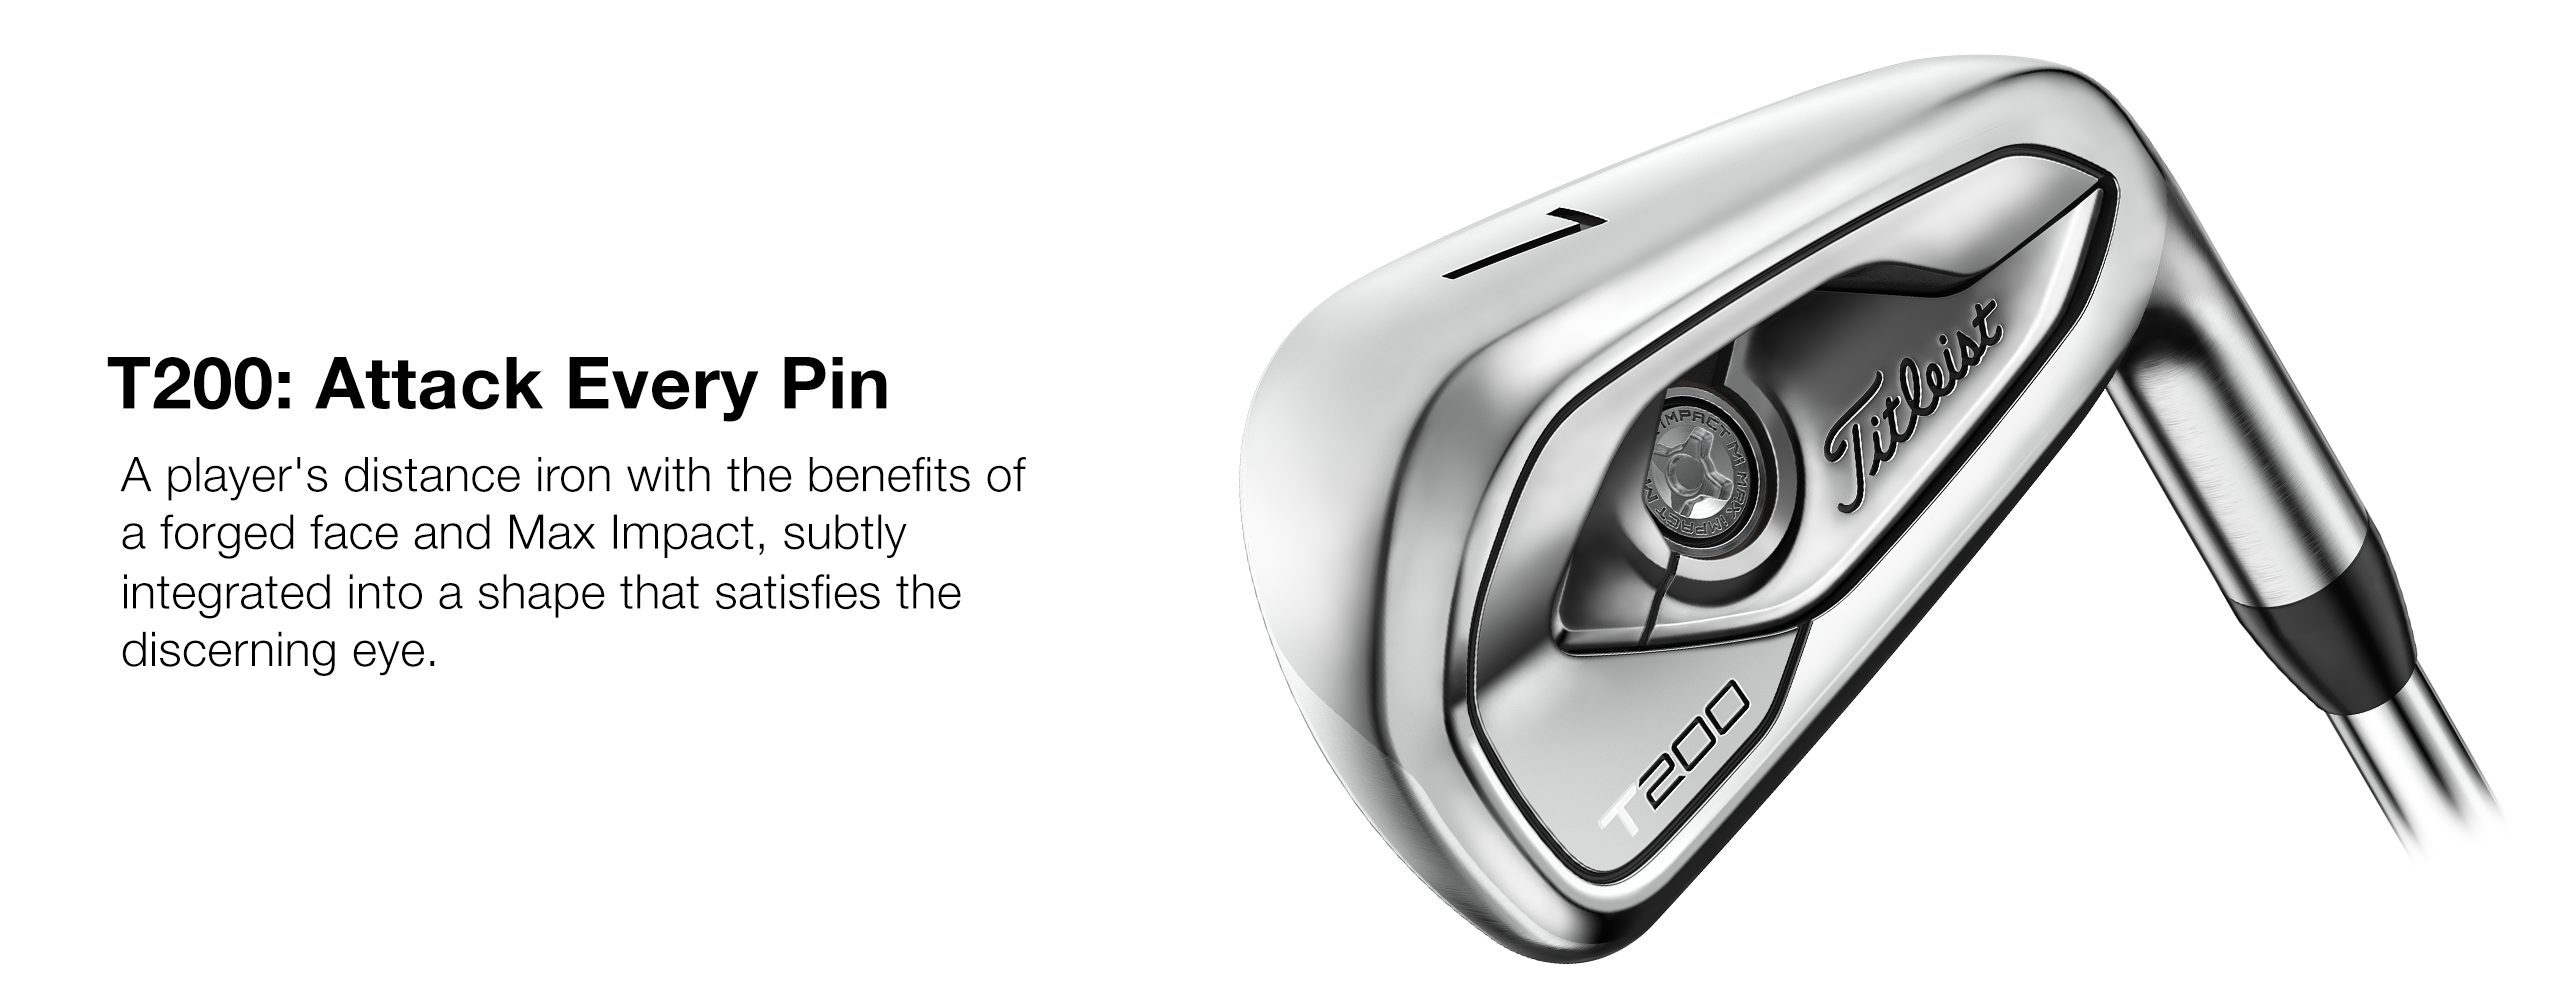 Titleist T200 Model Overview